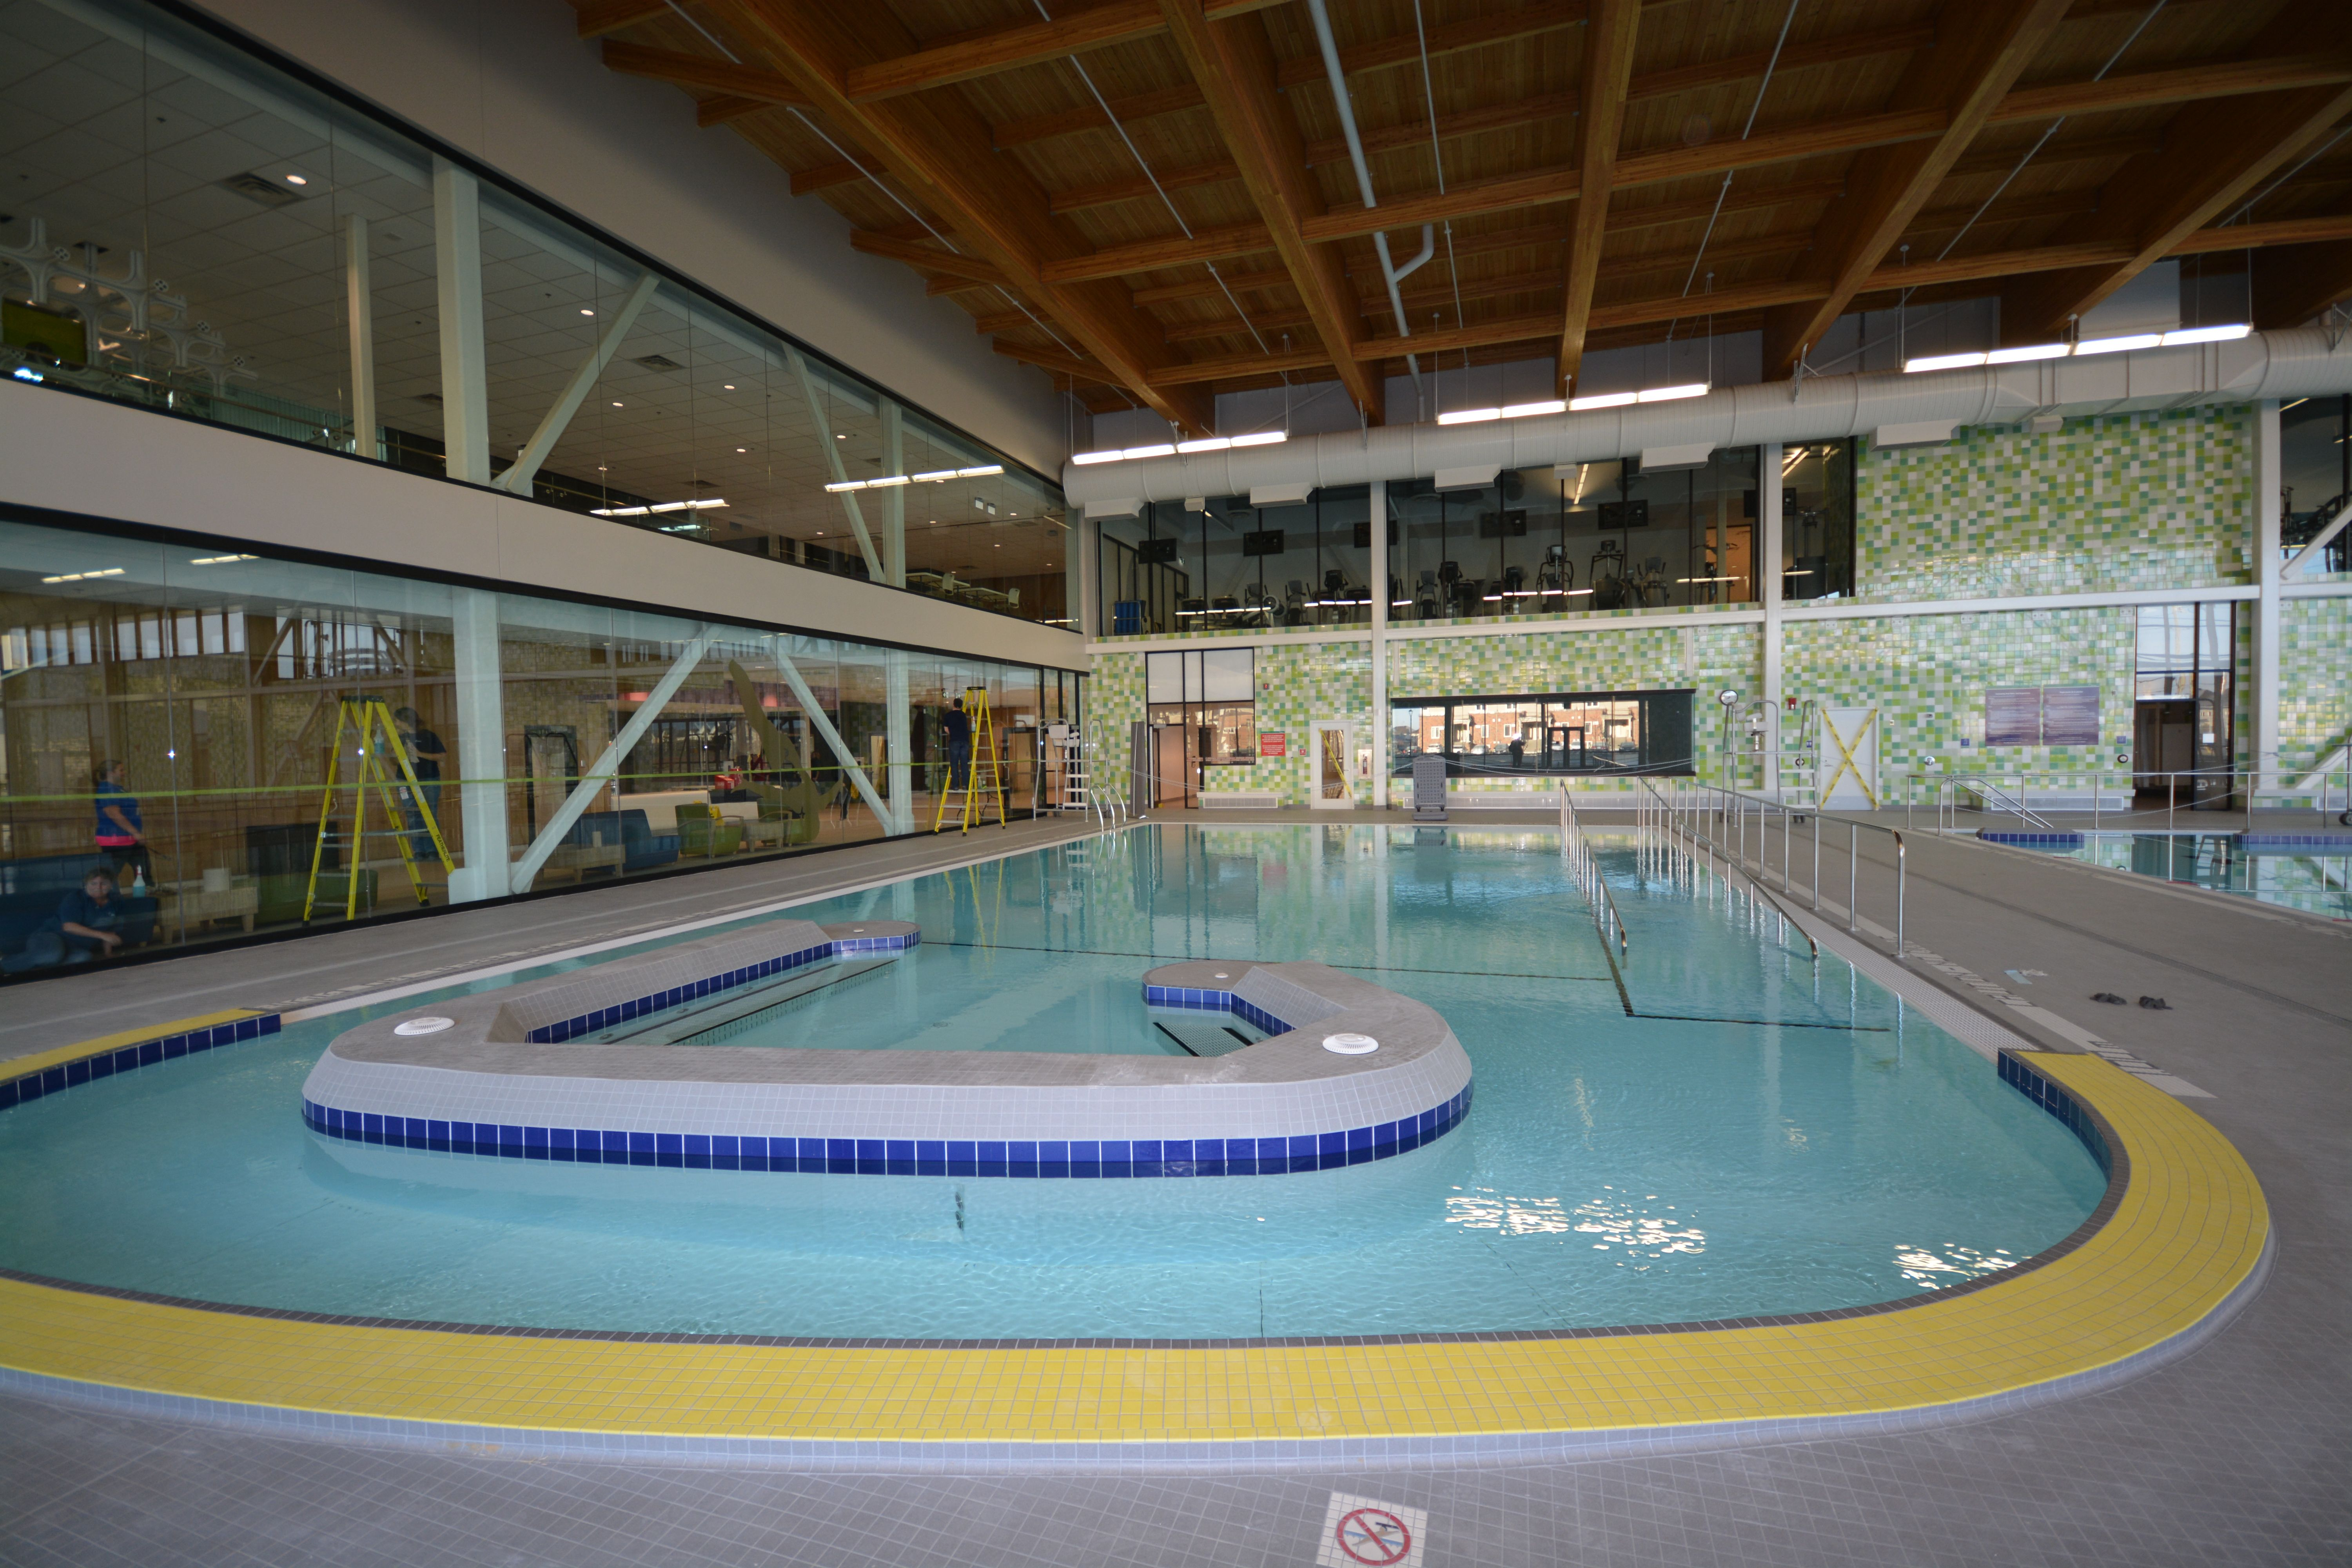 Lazy river minto recreation center barrhaven city of - St mary s school bexhill swimming pool ...